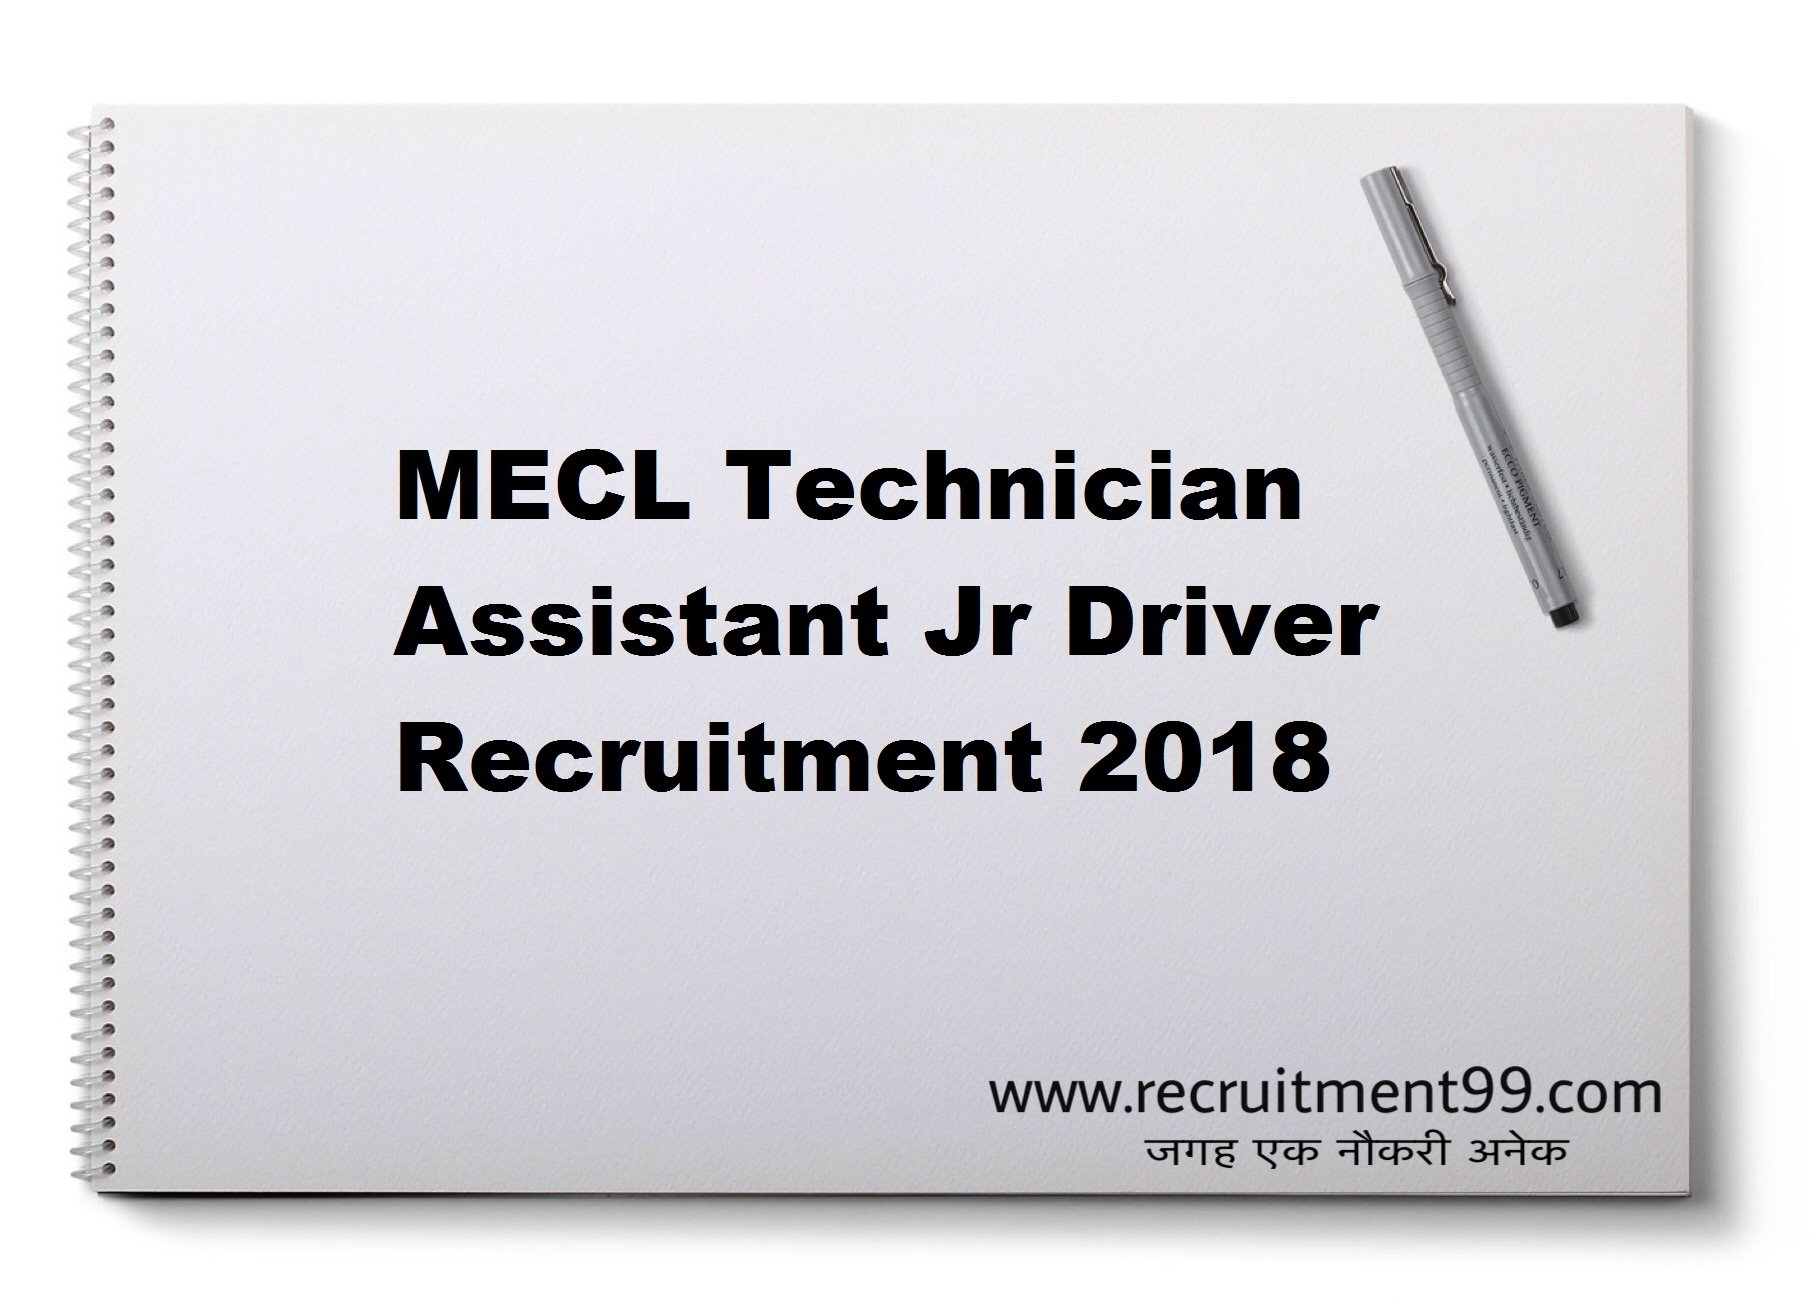 MECL Technician Assistant Jr Driver Recruitment Admit Card Result 2018